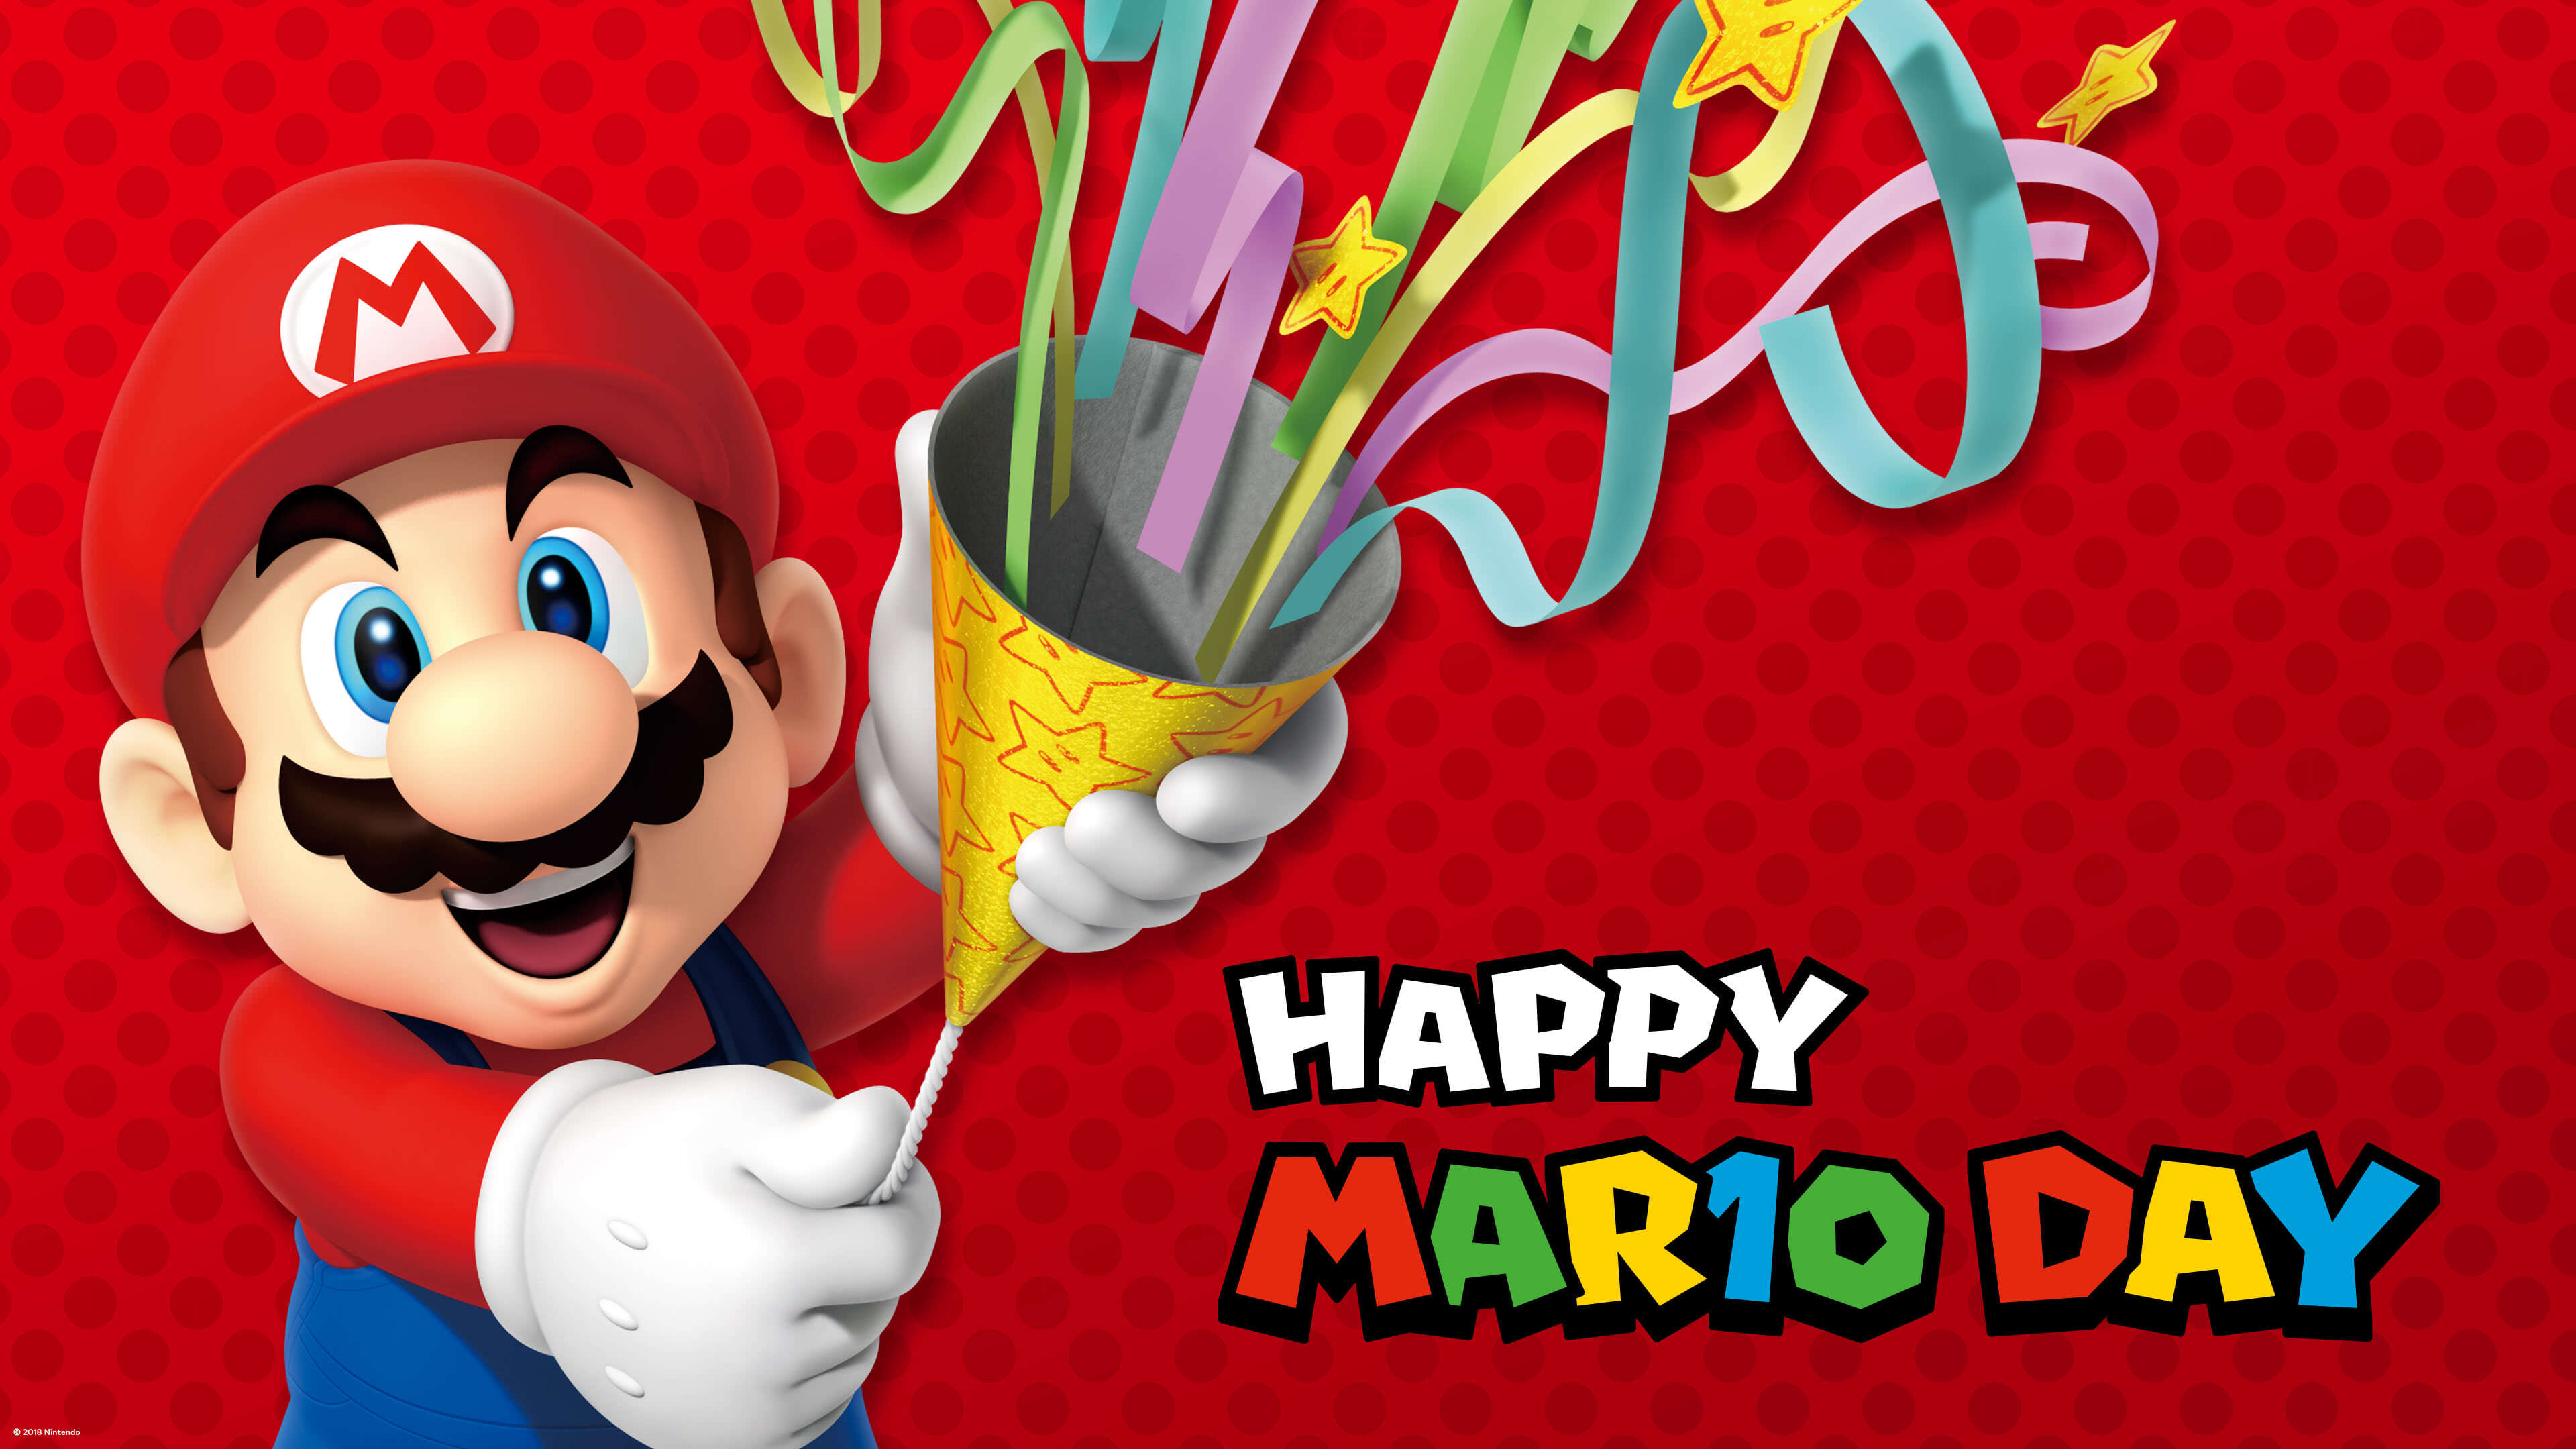 happy mario day celebration uhd 4k wallpaper